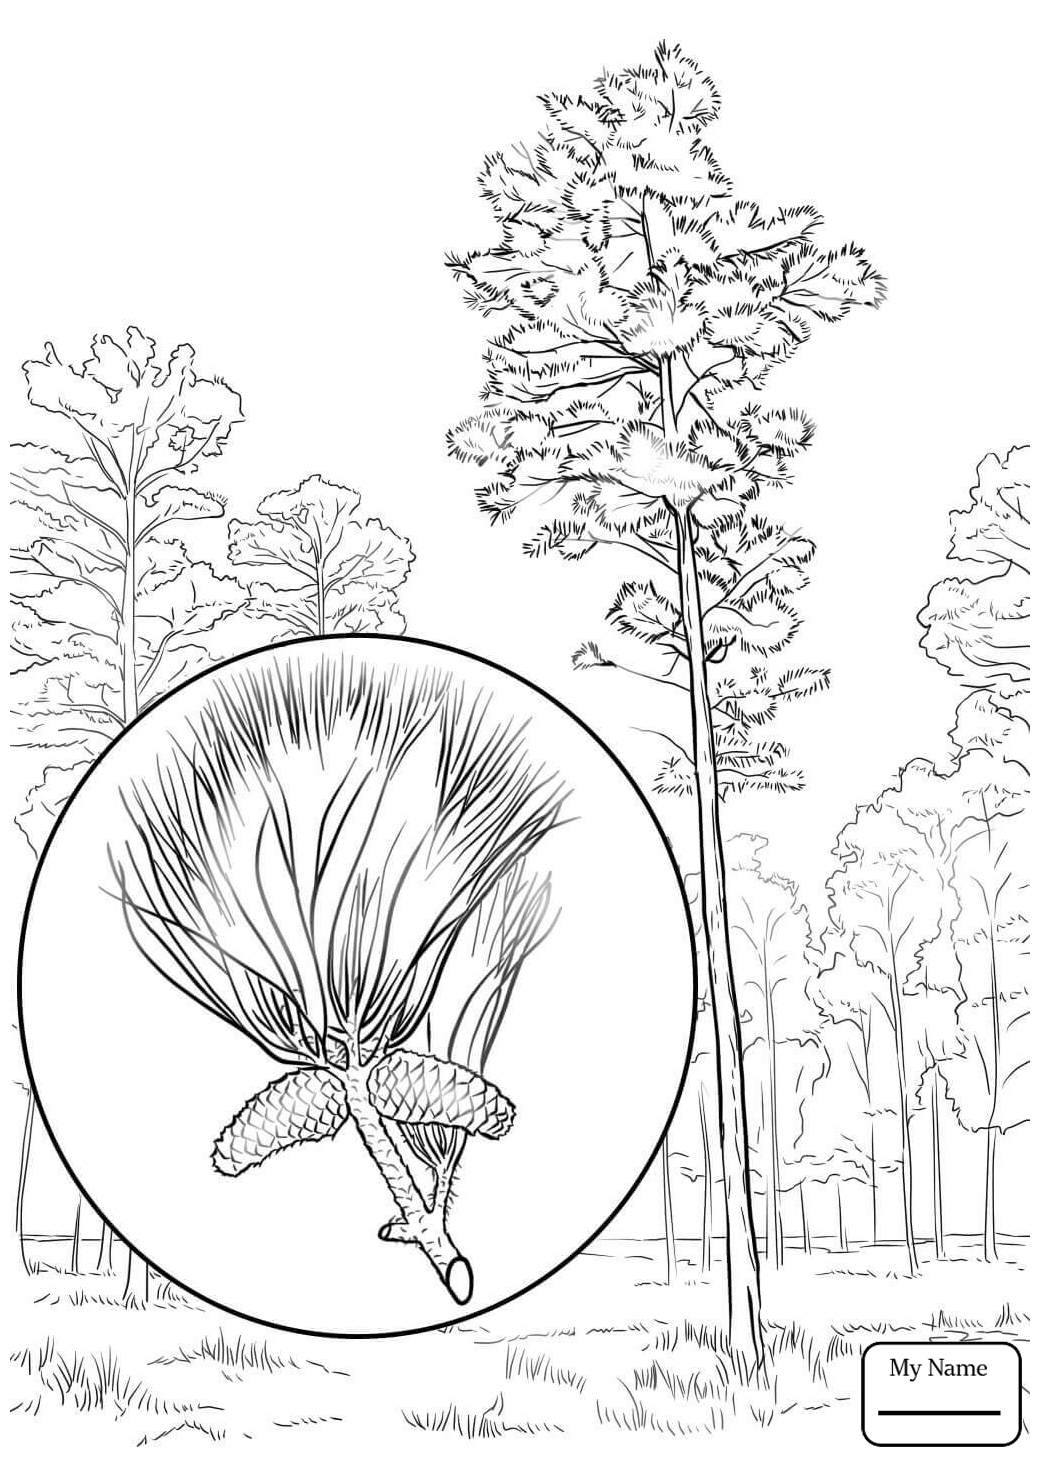 kids under pine trees coloring pages | Pine Tree Drawing at GetDrawings.com | Free for personal ...